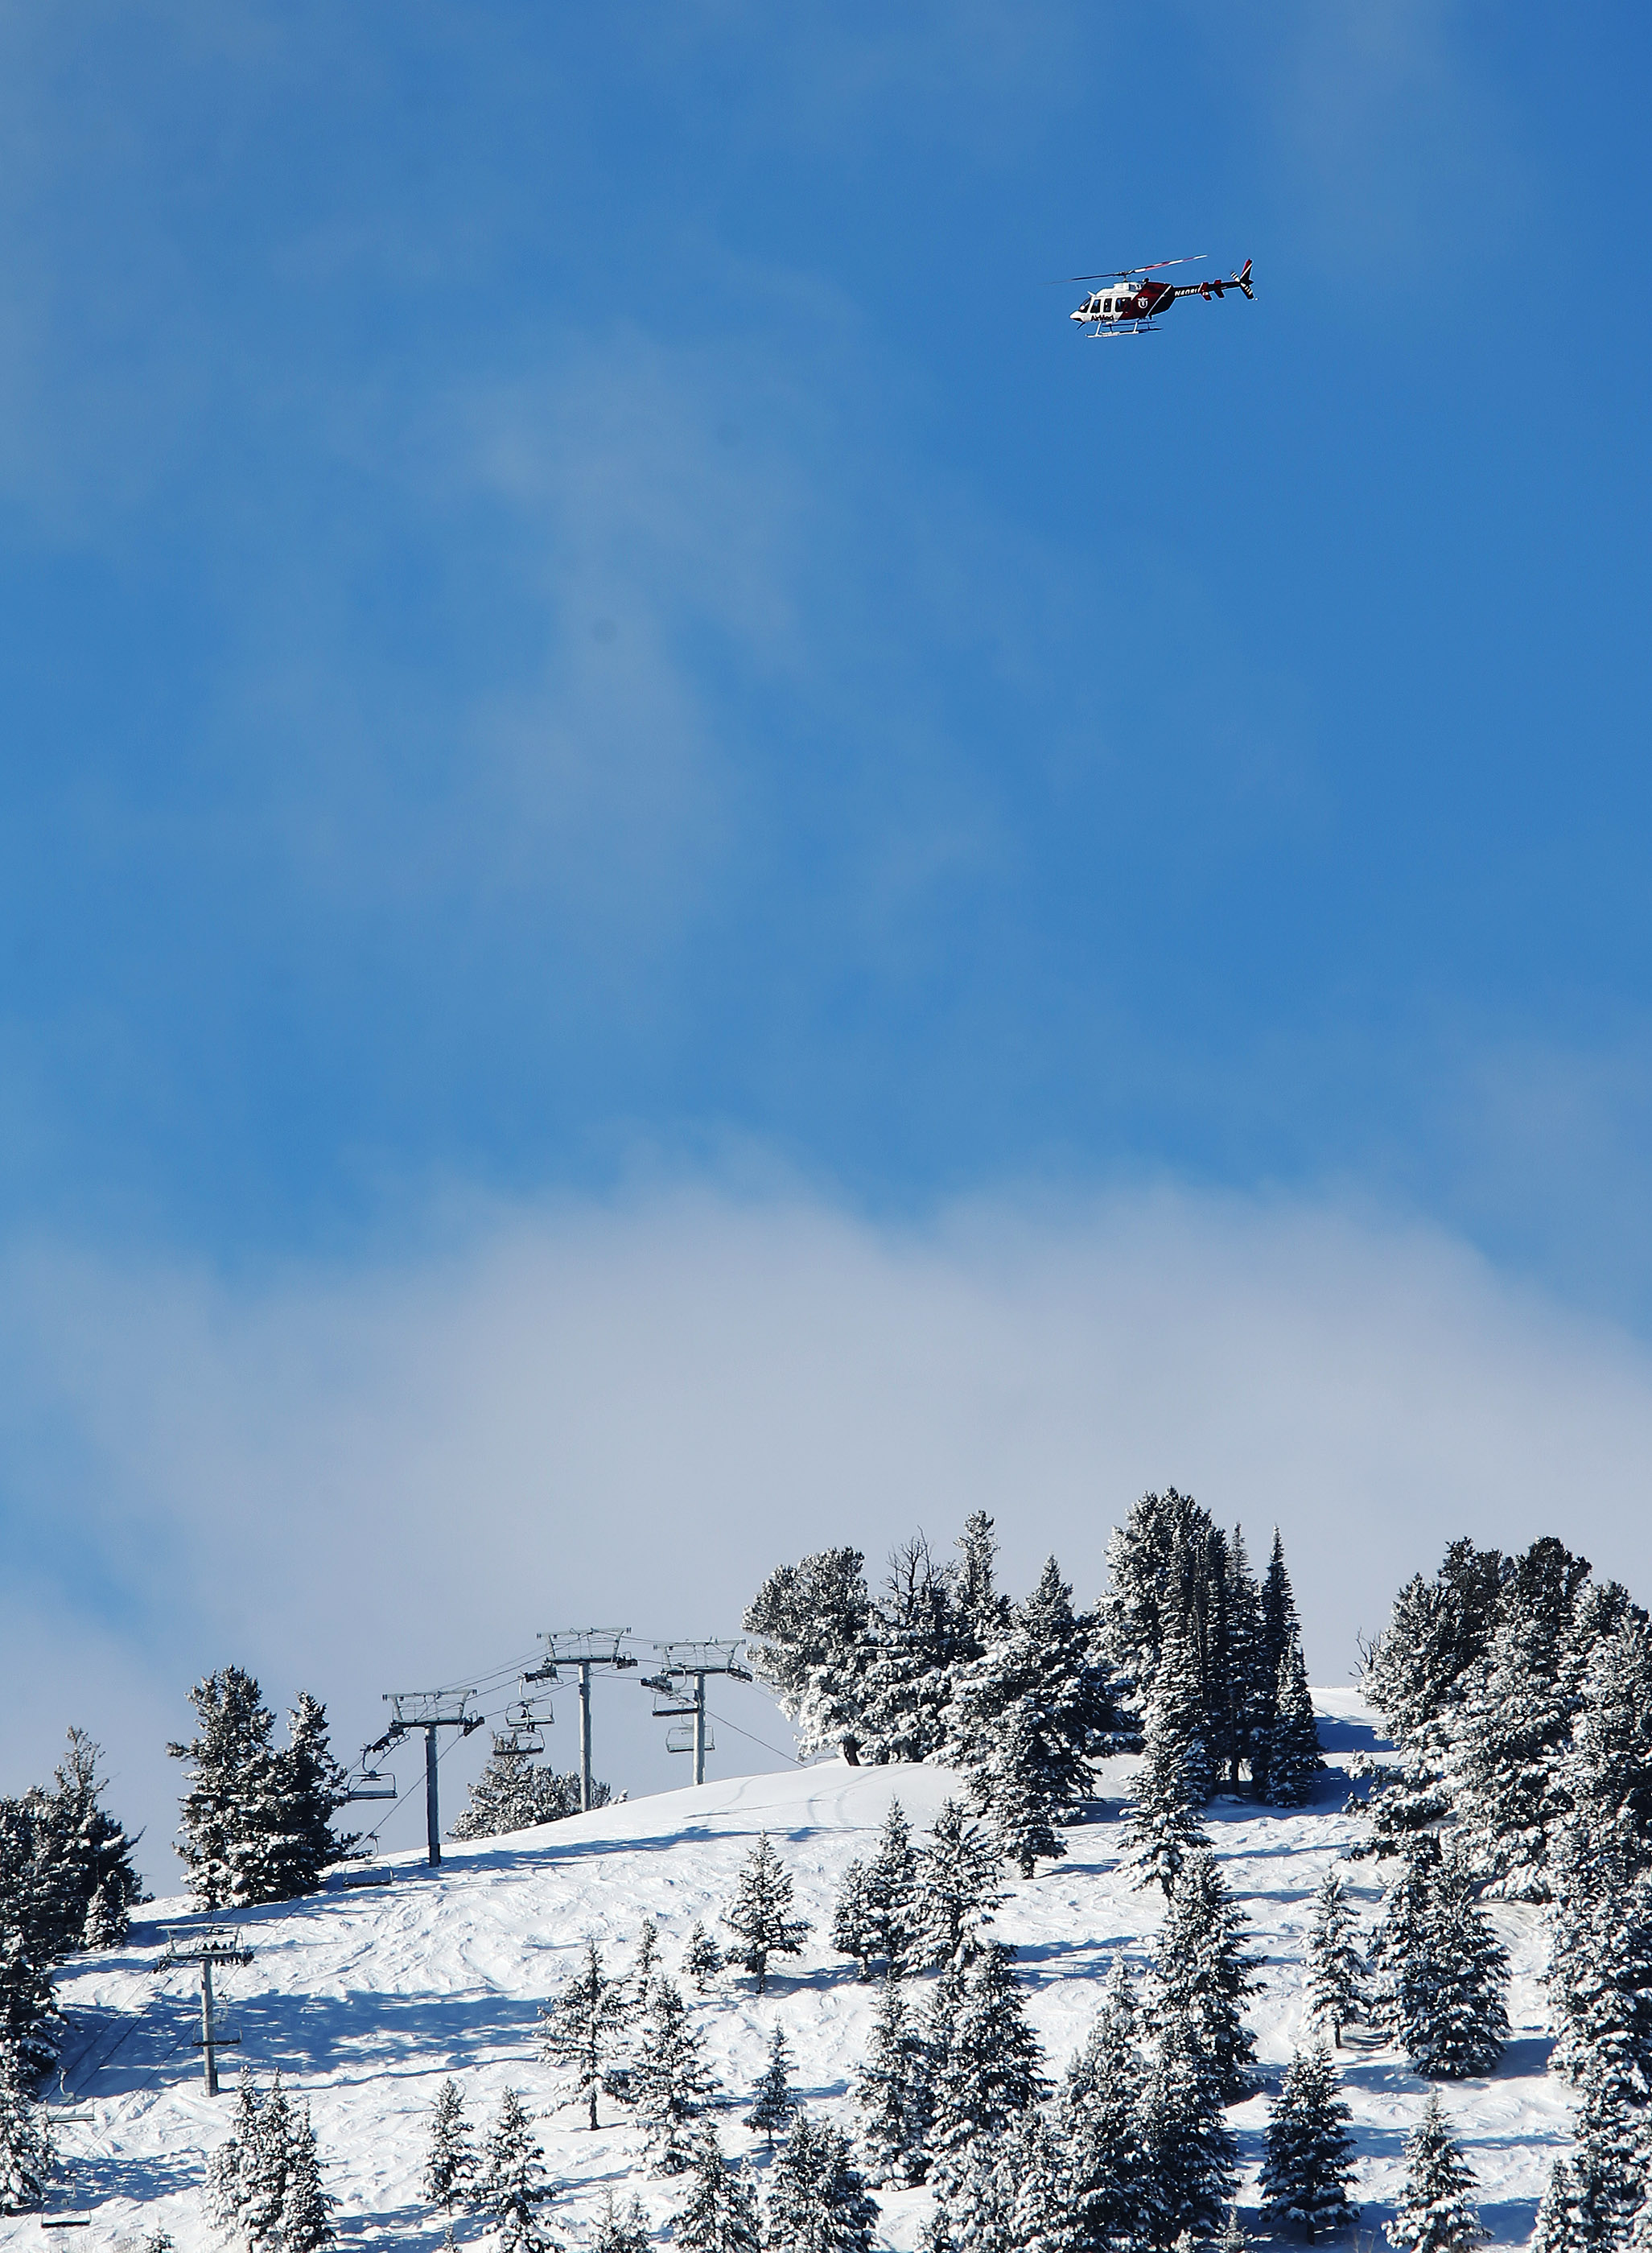 AirMed crews search for a missing skier in the out-of-bounds area near Canyon Village Resort in Park City on Tuesday, Feb. 2, 2016. The skier has been missing since Sunday.